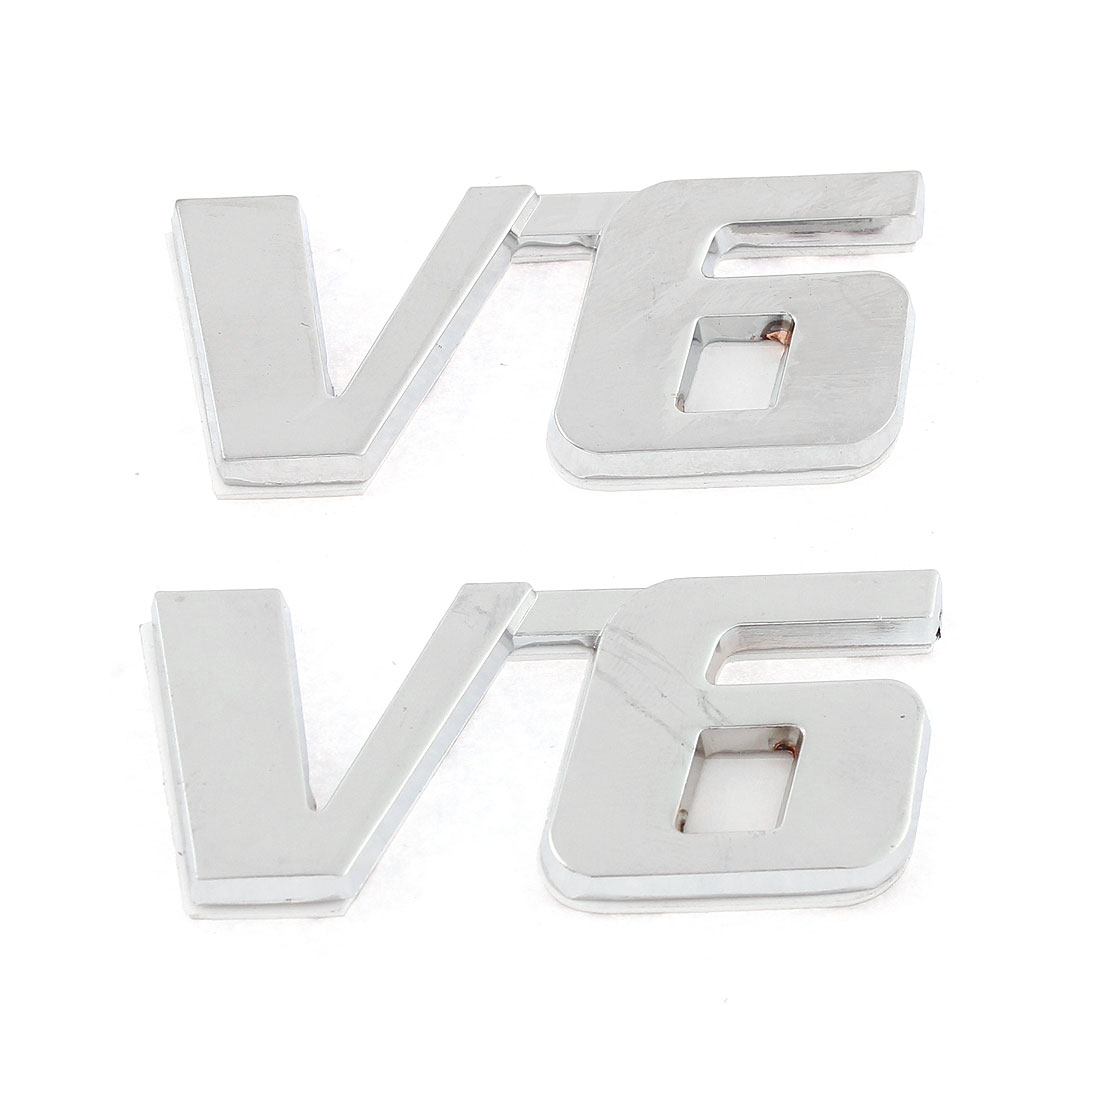 Polish Chrome V6 Fender Bumper Sticker Metal Emblem Decal Symbol Trim Badge 2 Pcs